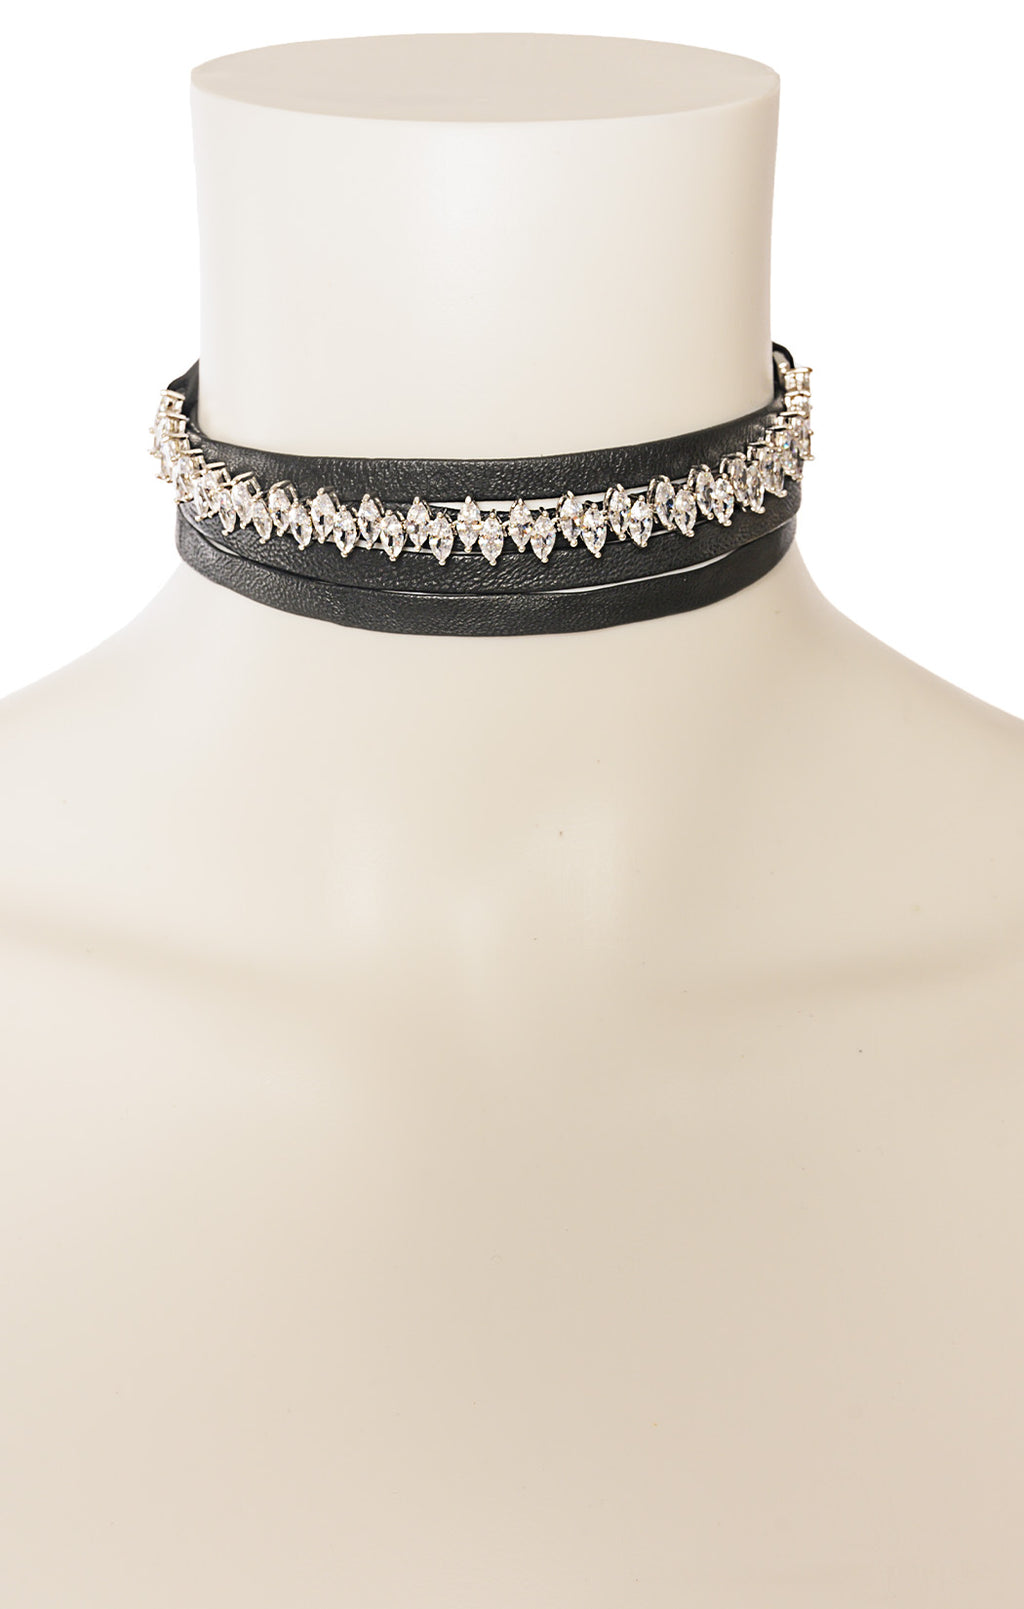 "View of NO NAME Necklace Size: Rhinestone area is 6"" with black leather straps 33"" long"